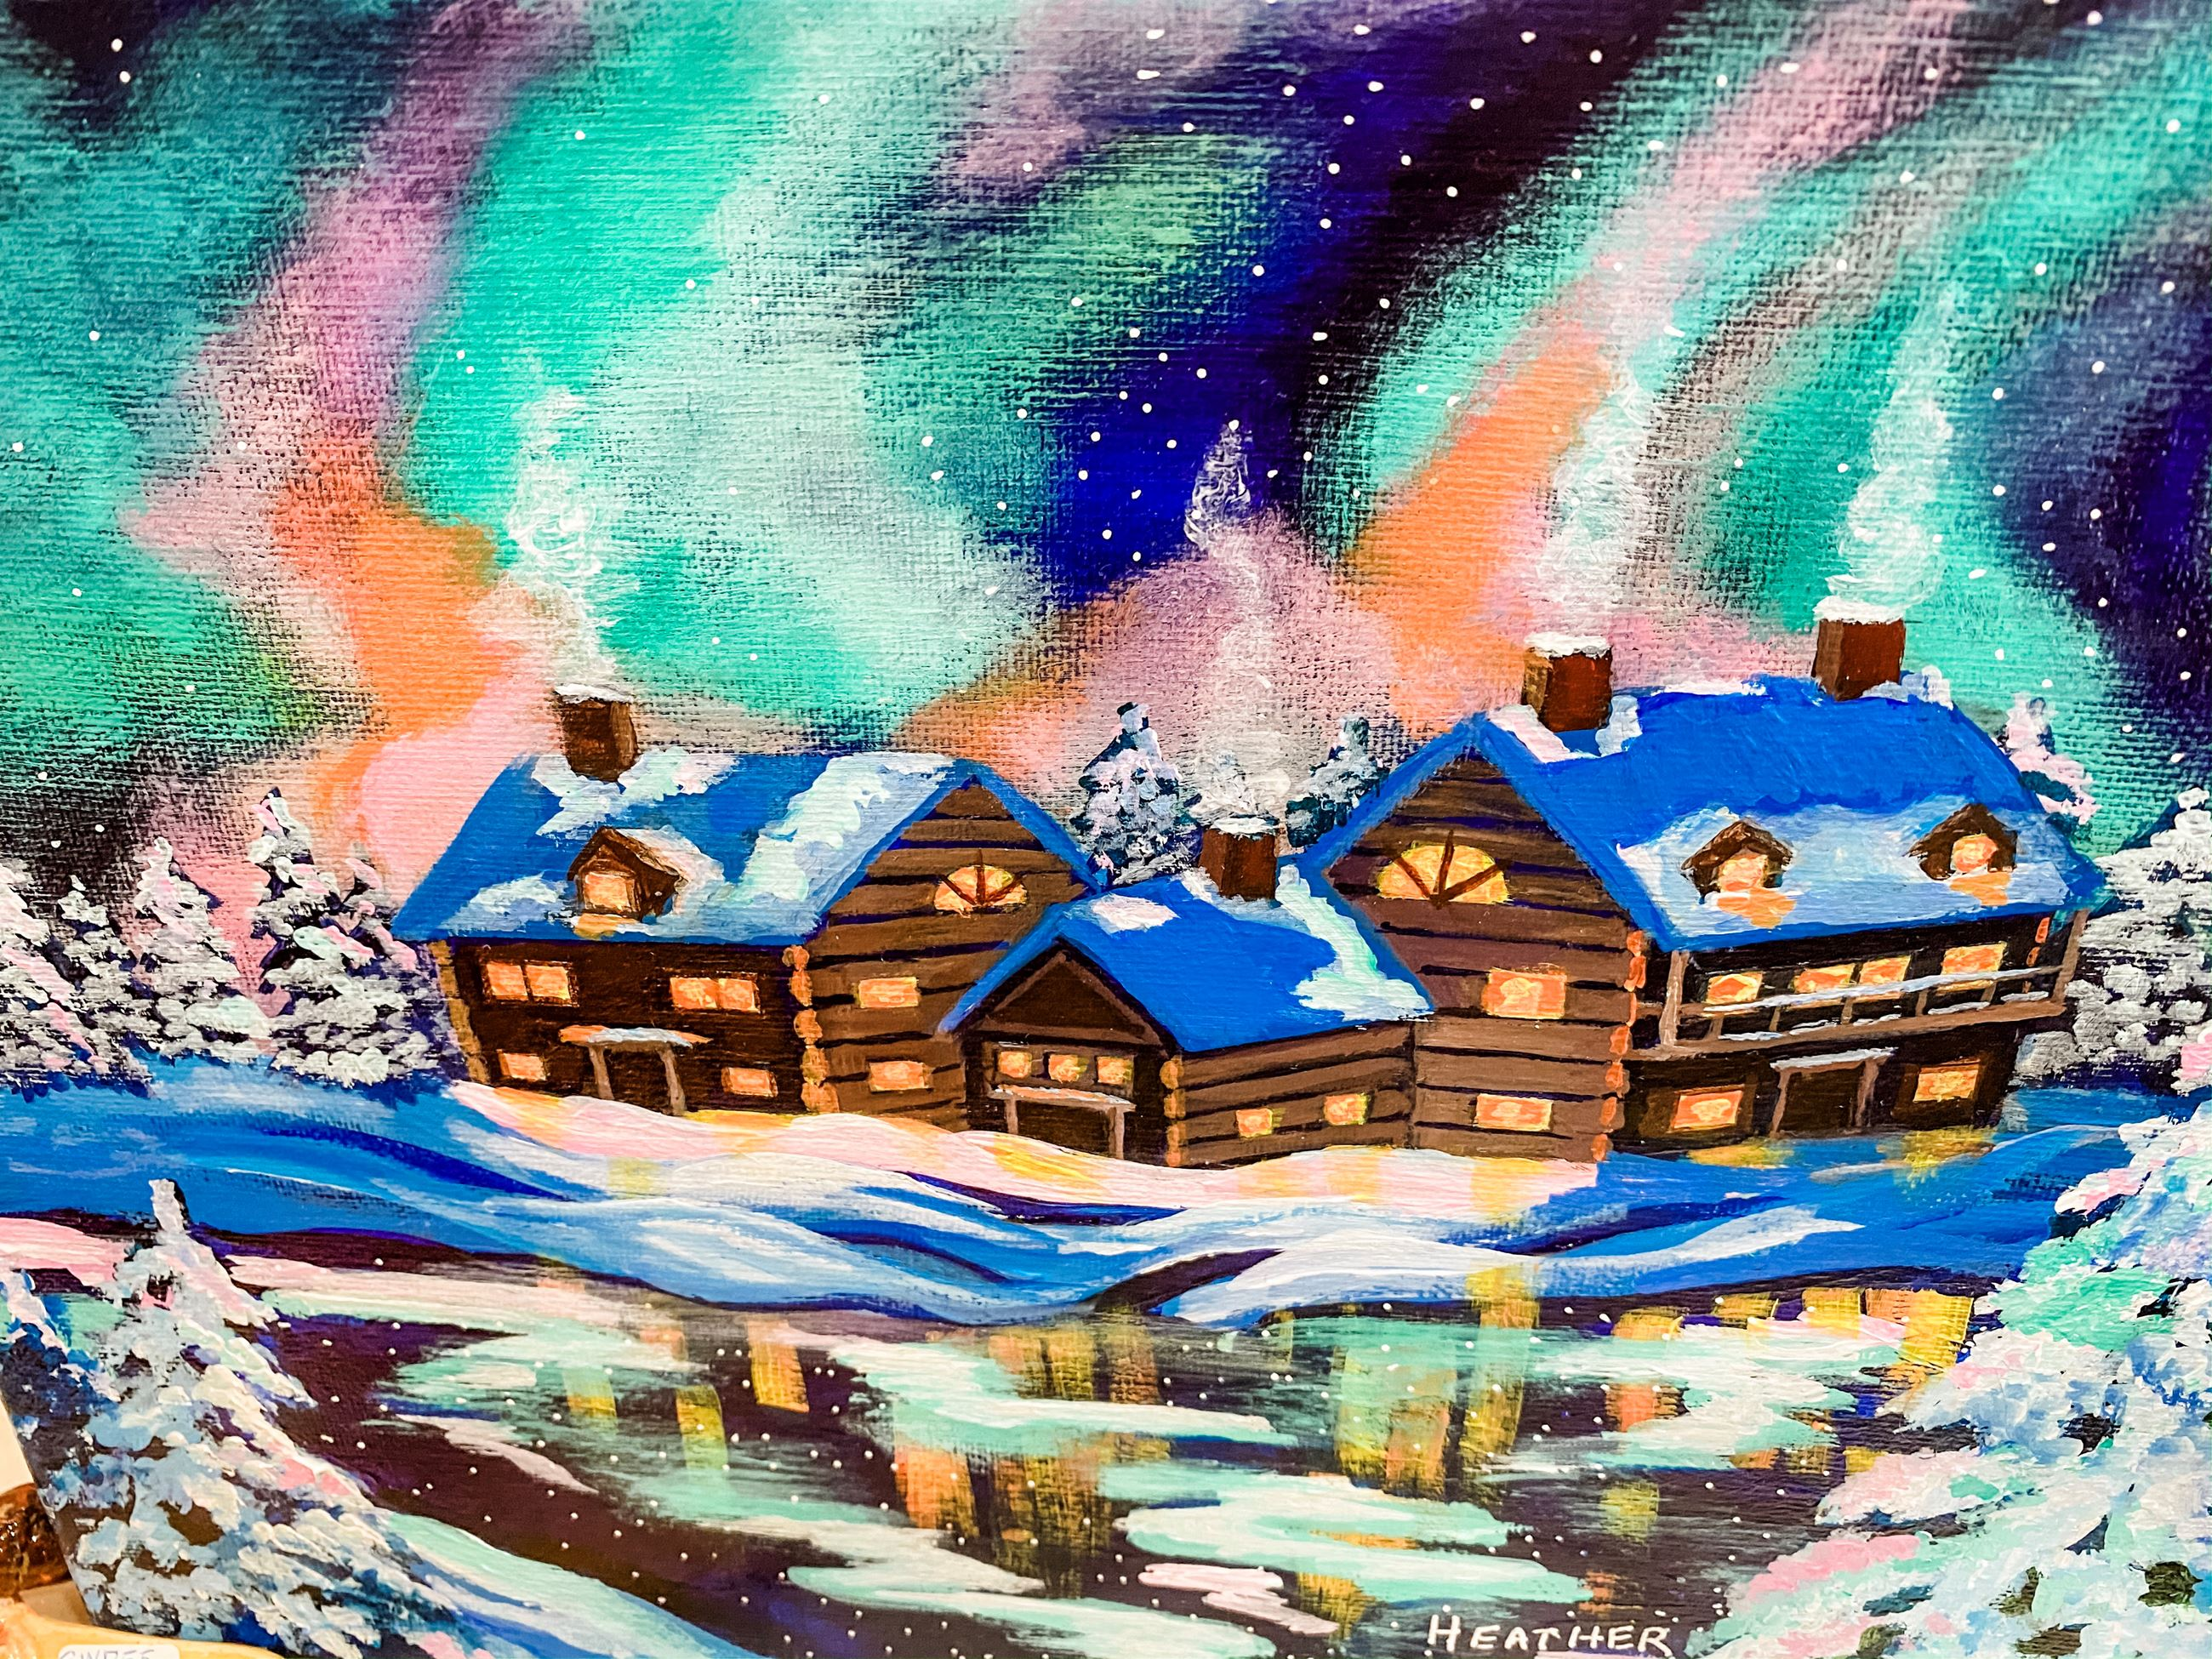 Christmas Cottages Painting at Gallery at York Hall